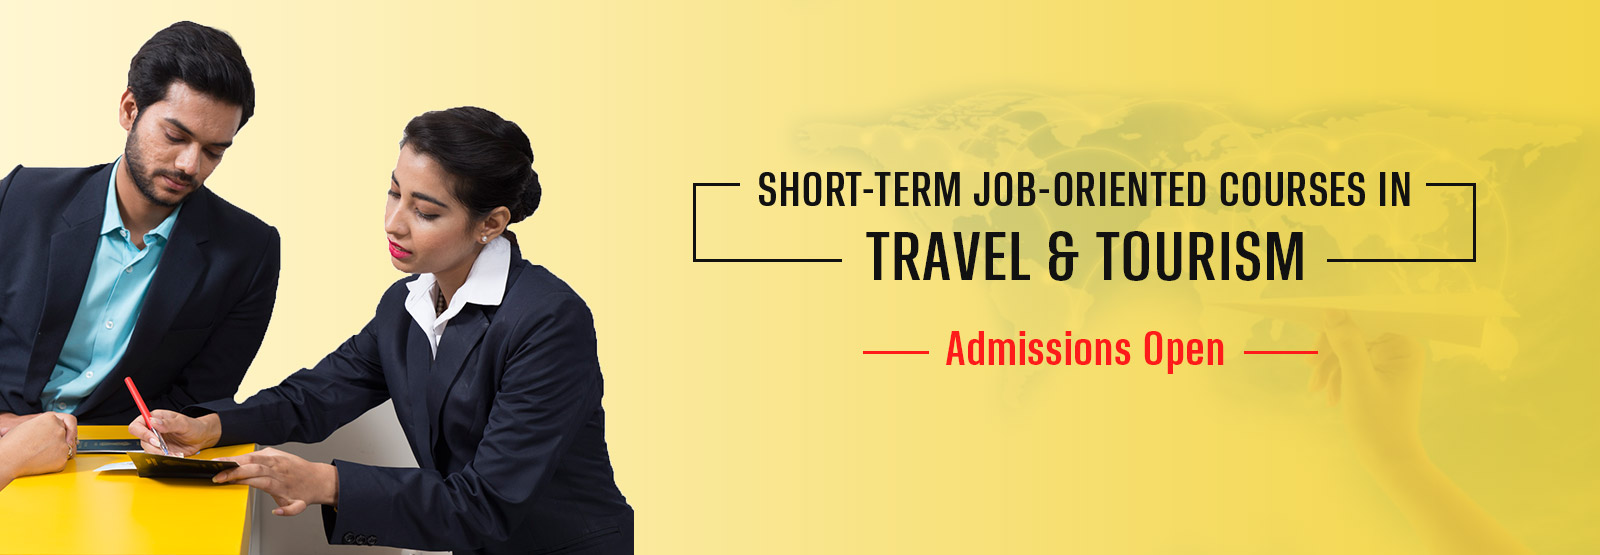 Short-term Travel and Tourism Courses banner